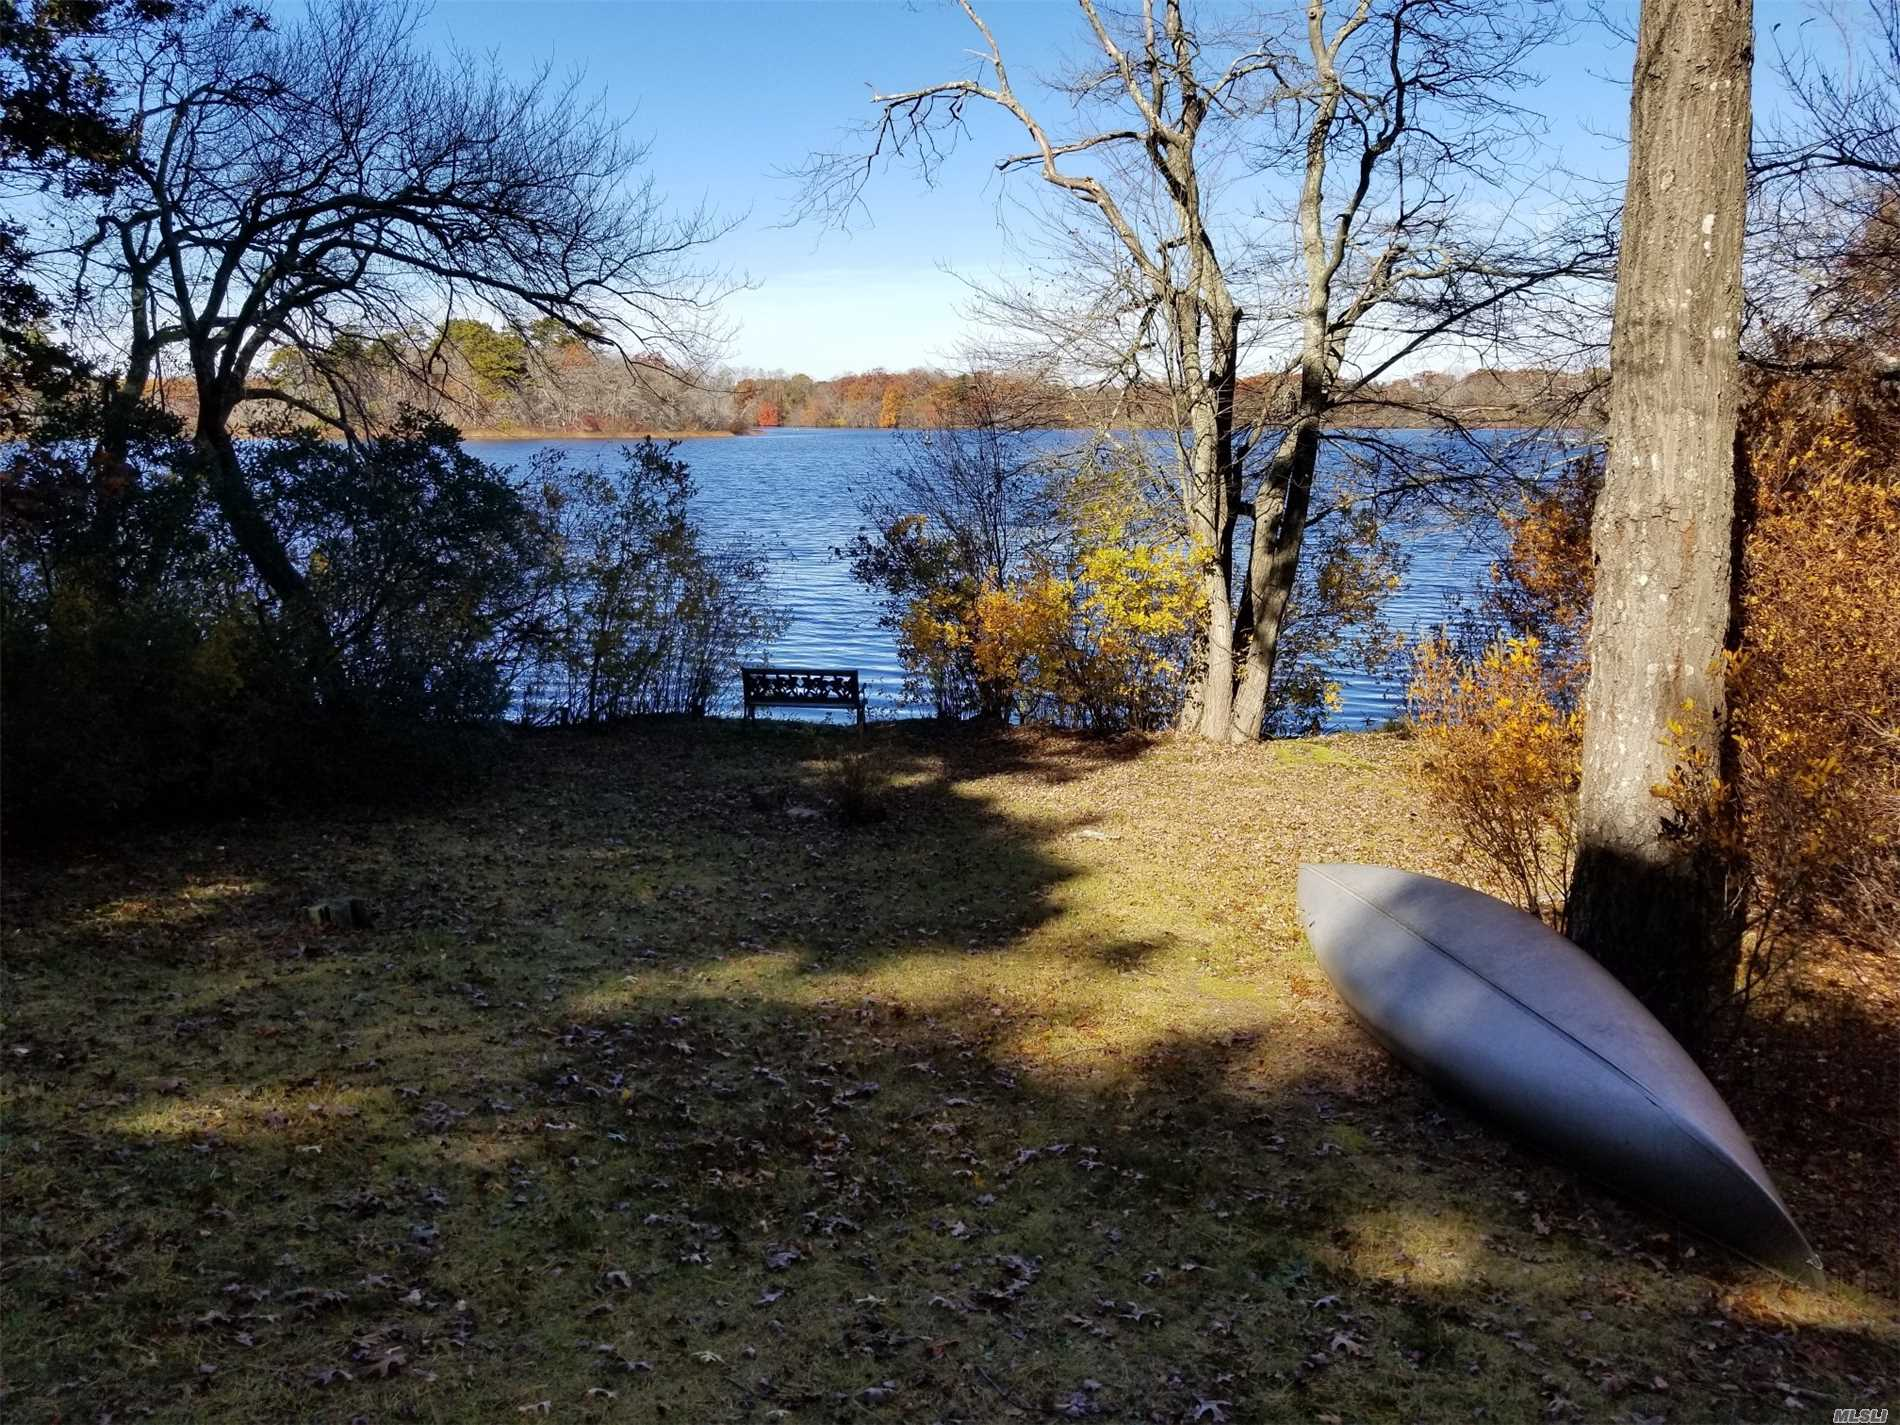 An Amazing Opportunity To Live On The Peconic River. Beautiful Peconic Lake Front Home With Picture Perfect Views All Year Round. Fishing, Kayaking, Paddle Boarding From Your Backyard. High Ceilings, Large Den With Fireplace Leading Out To The Sunroom. This Is A Perfect Starter Home For The Outdoor Enthusiast Or Someone Looking To Downsize And Enjoy The Peace And Quiet Of Lakefront Living.